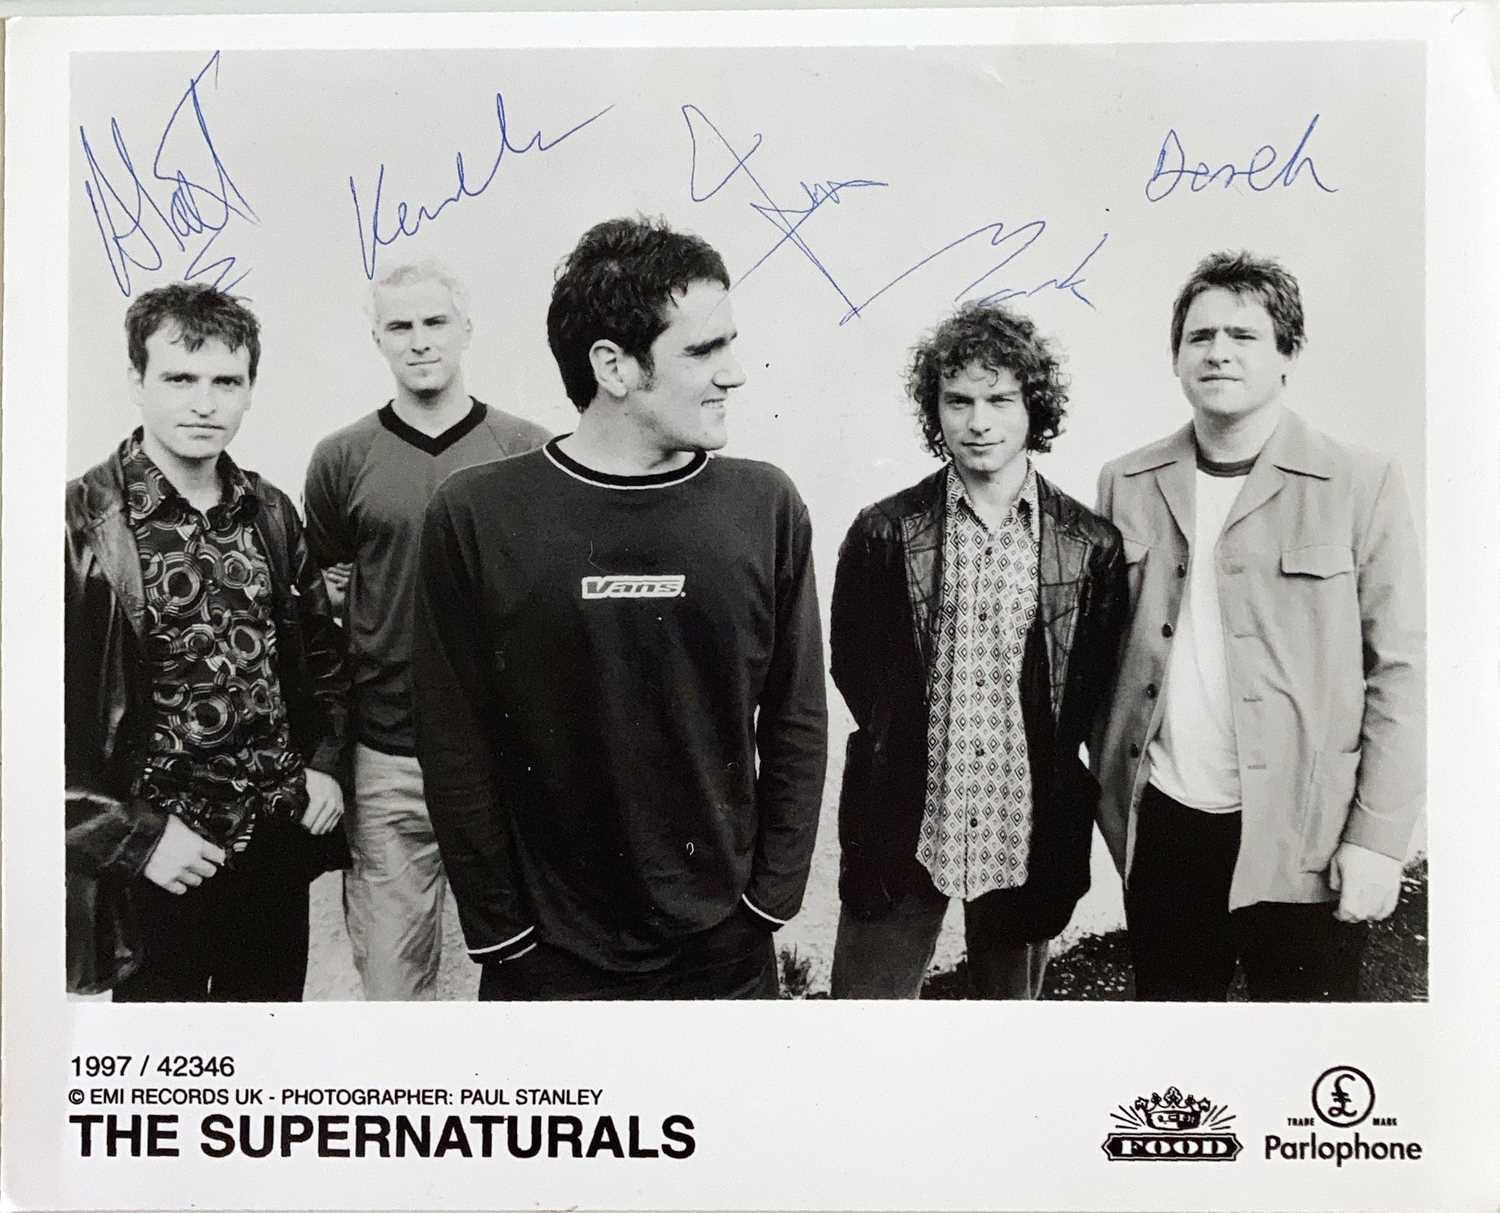 INDIE ARTISTS SIGNED ITEMS - HARD FI. - Image 2 of 11